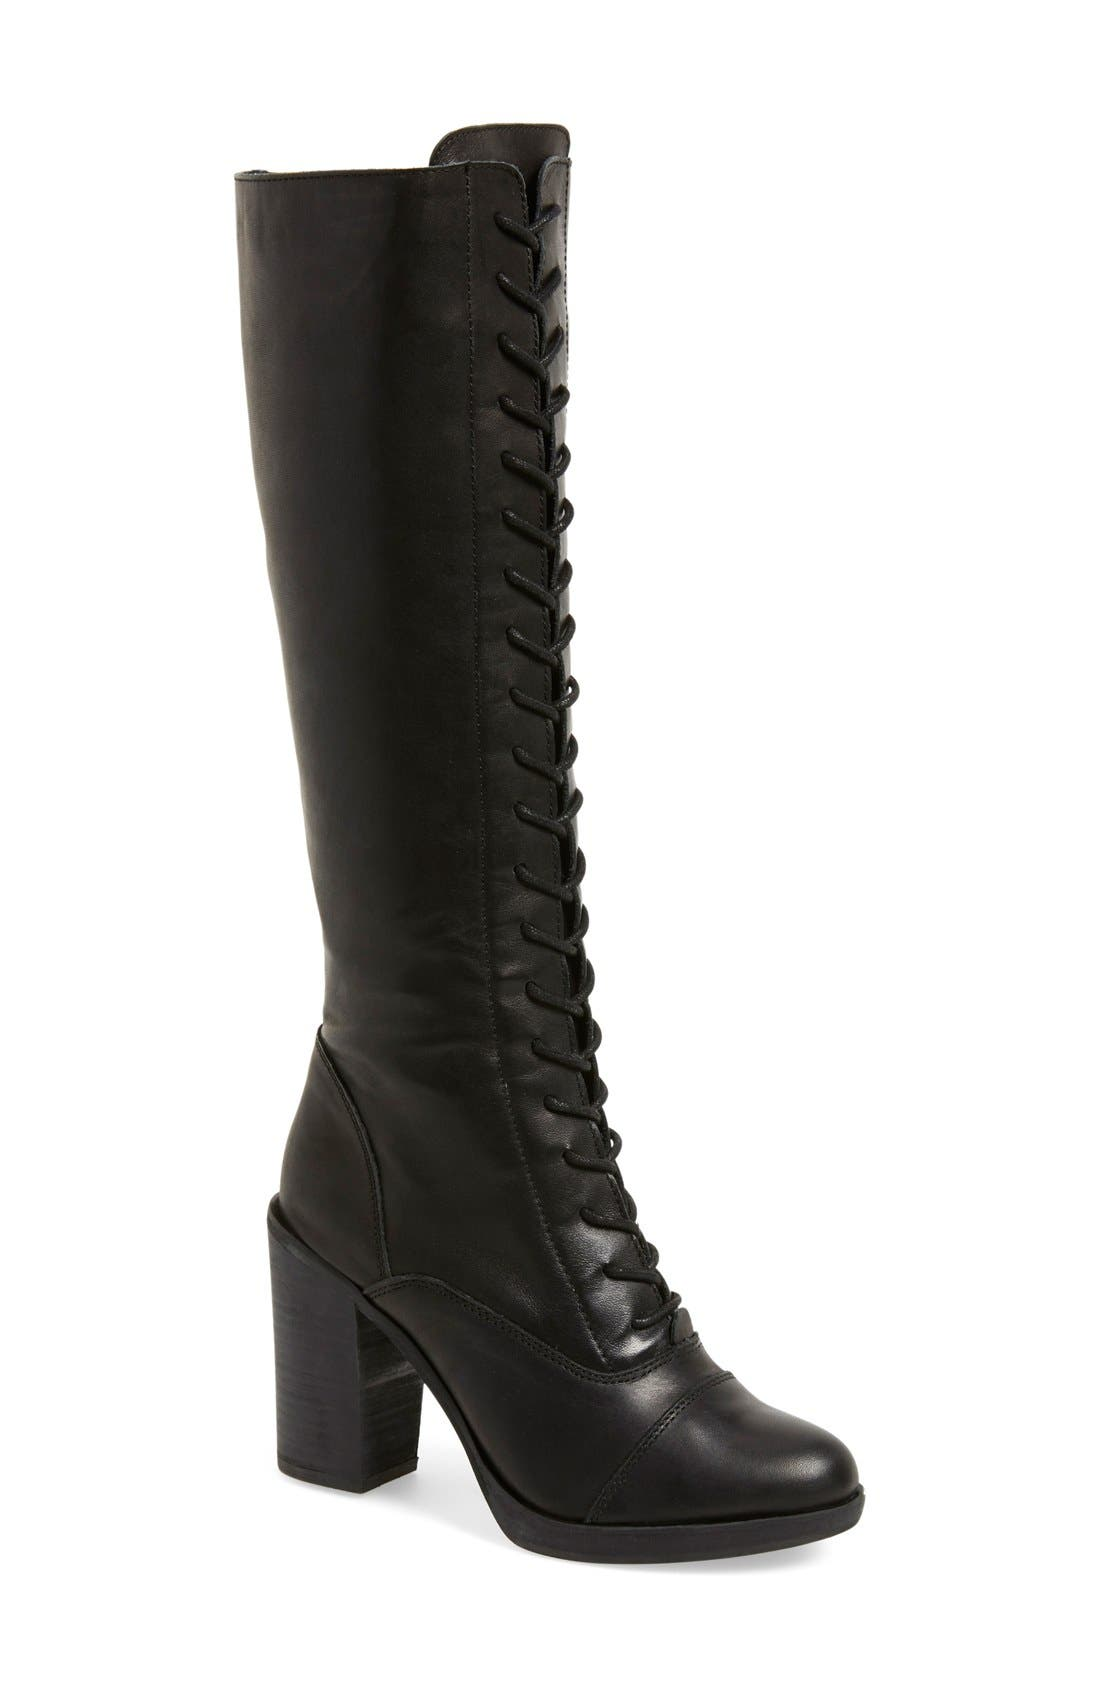 Main Image - Steve Madden 'Nidea' Lace-Up Knee High Boot (Women)